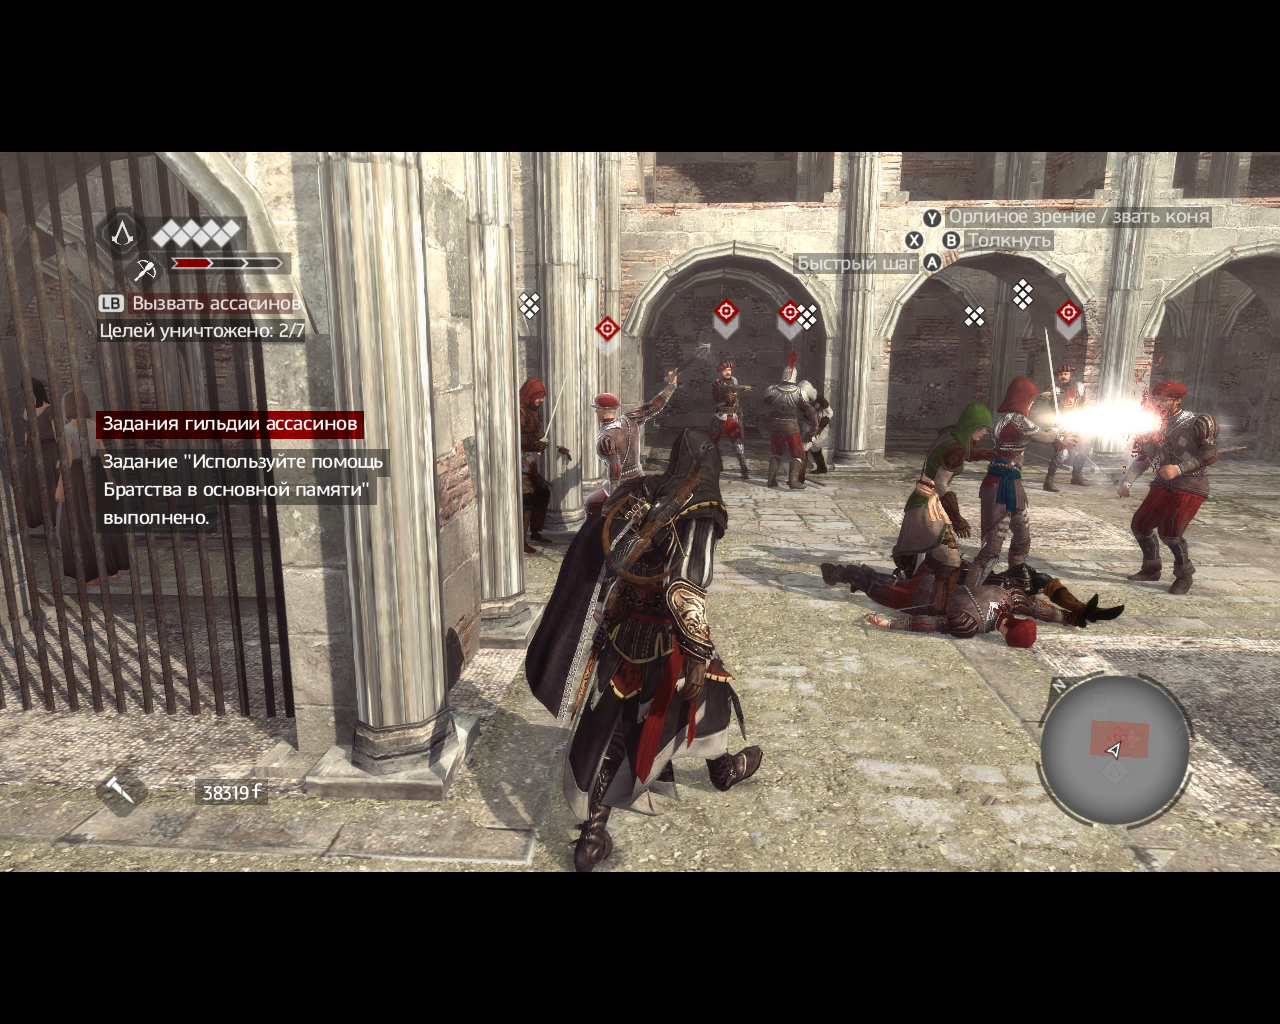 Assassin's Creed: Brotherhood Windows Aided by my assassins in battle